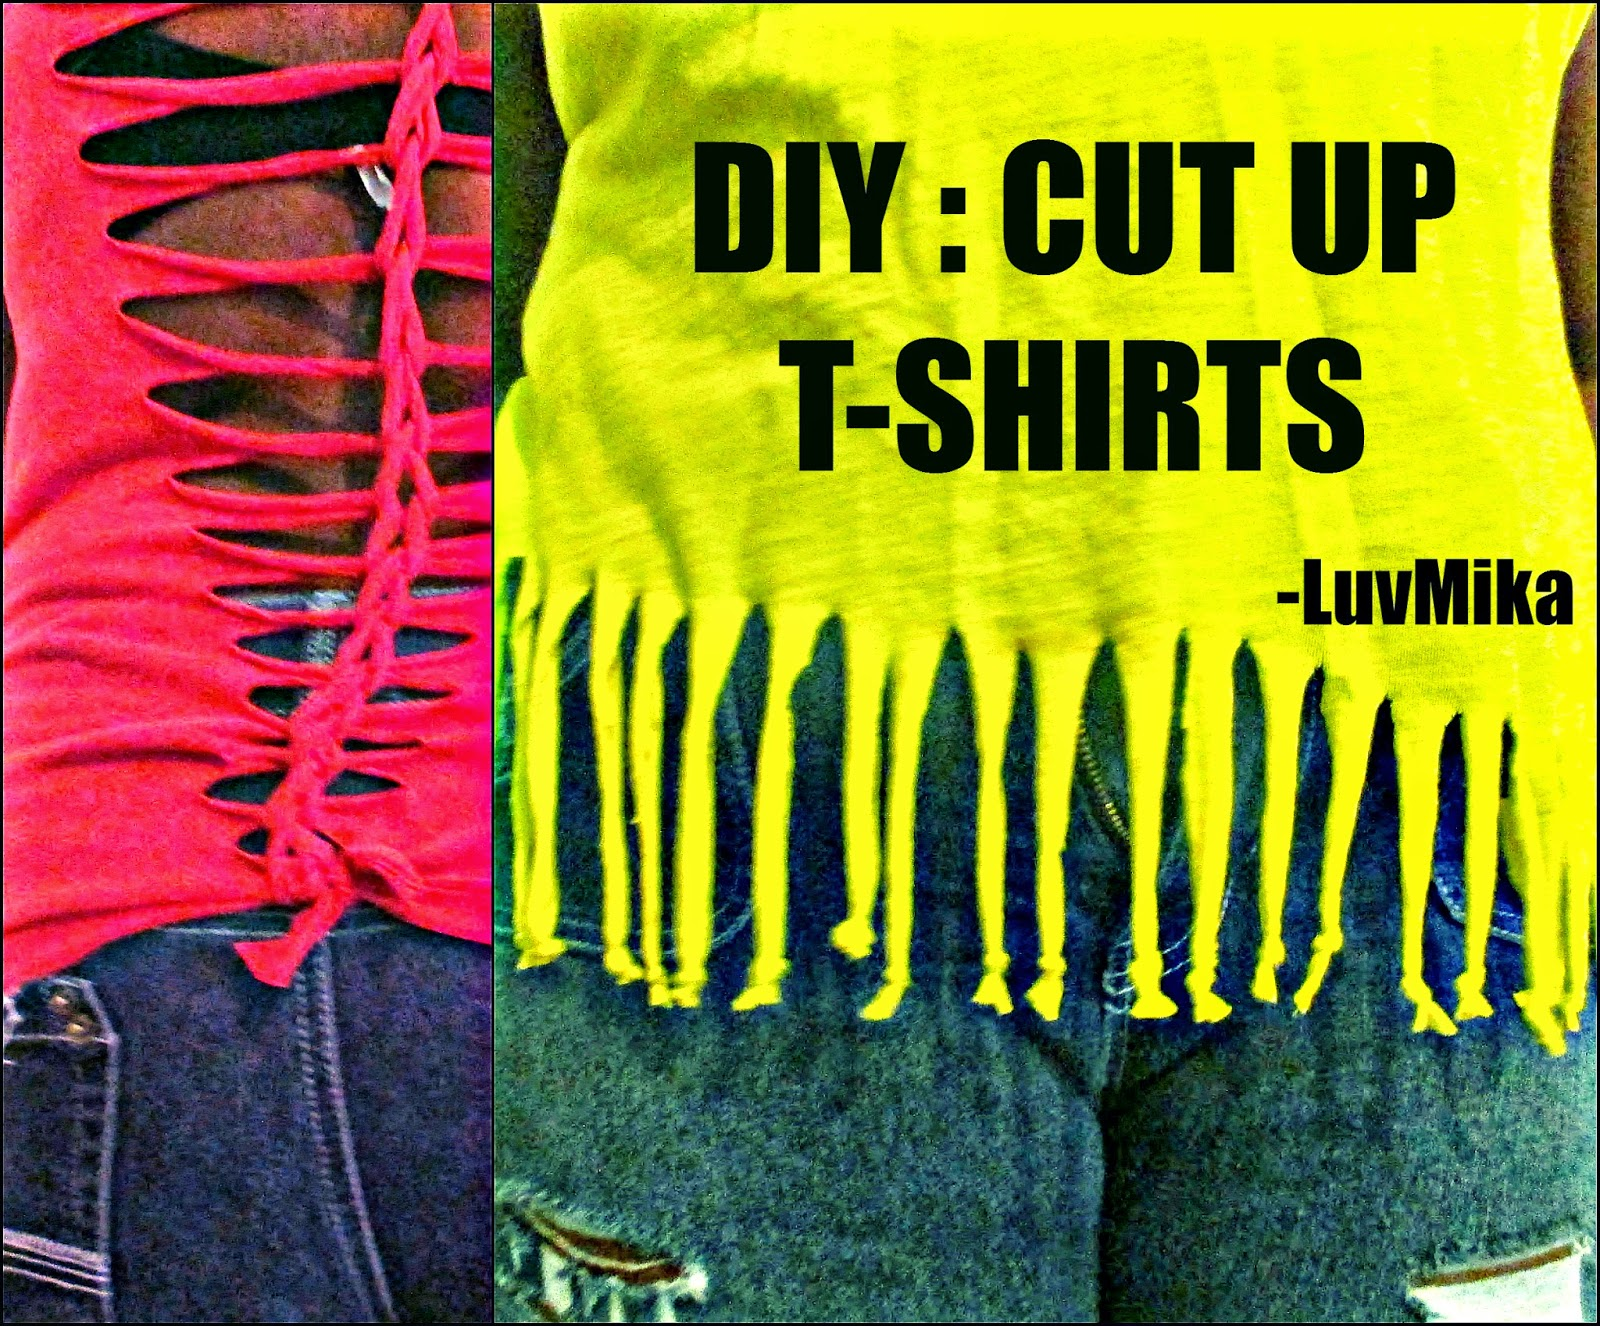 Luvmika 87 diy cut up t shirts for Where can i create my own shirt